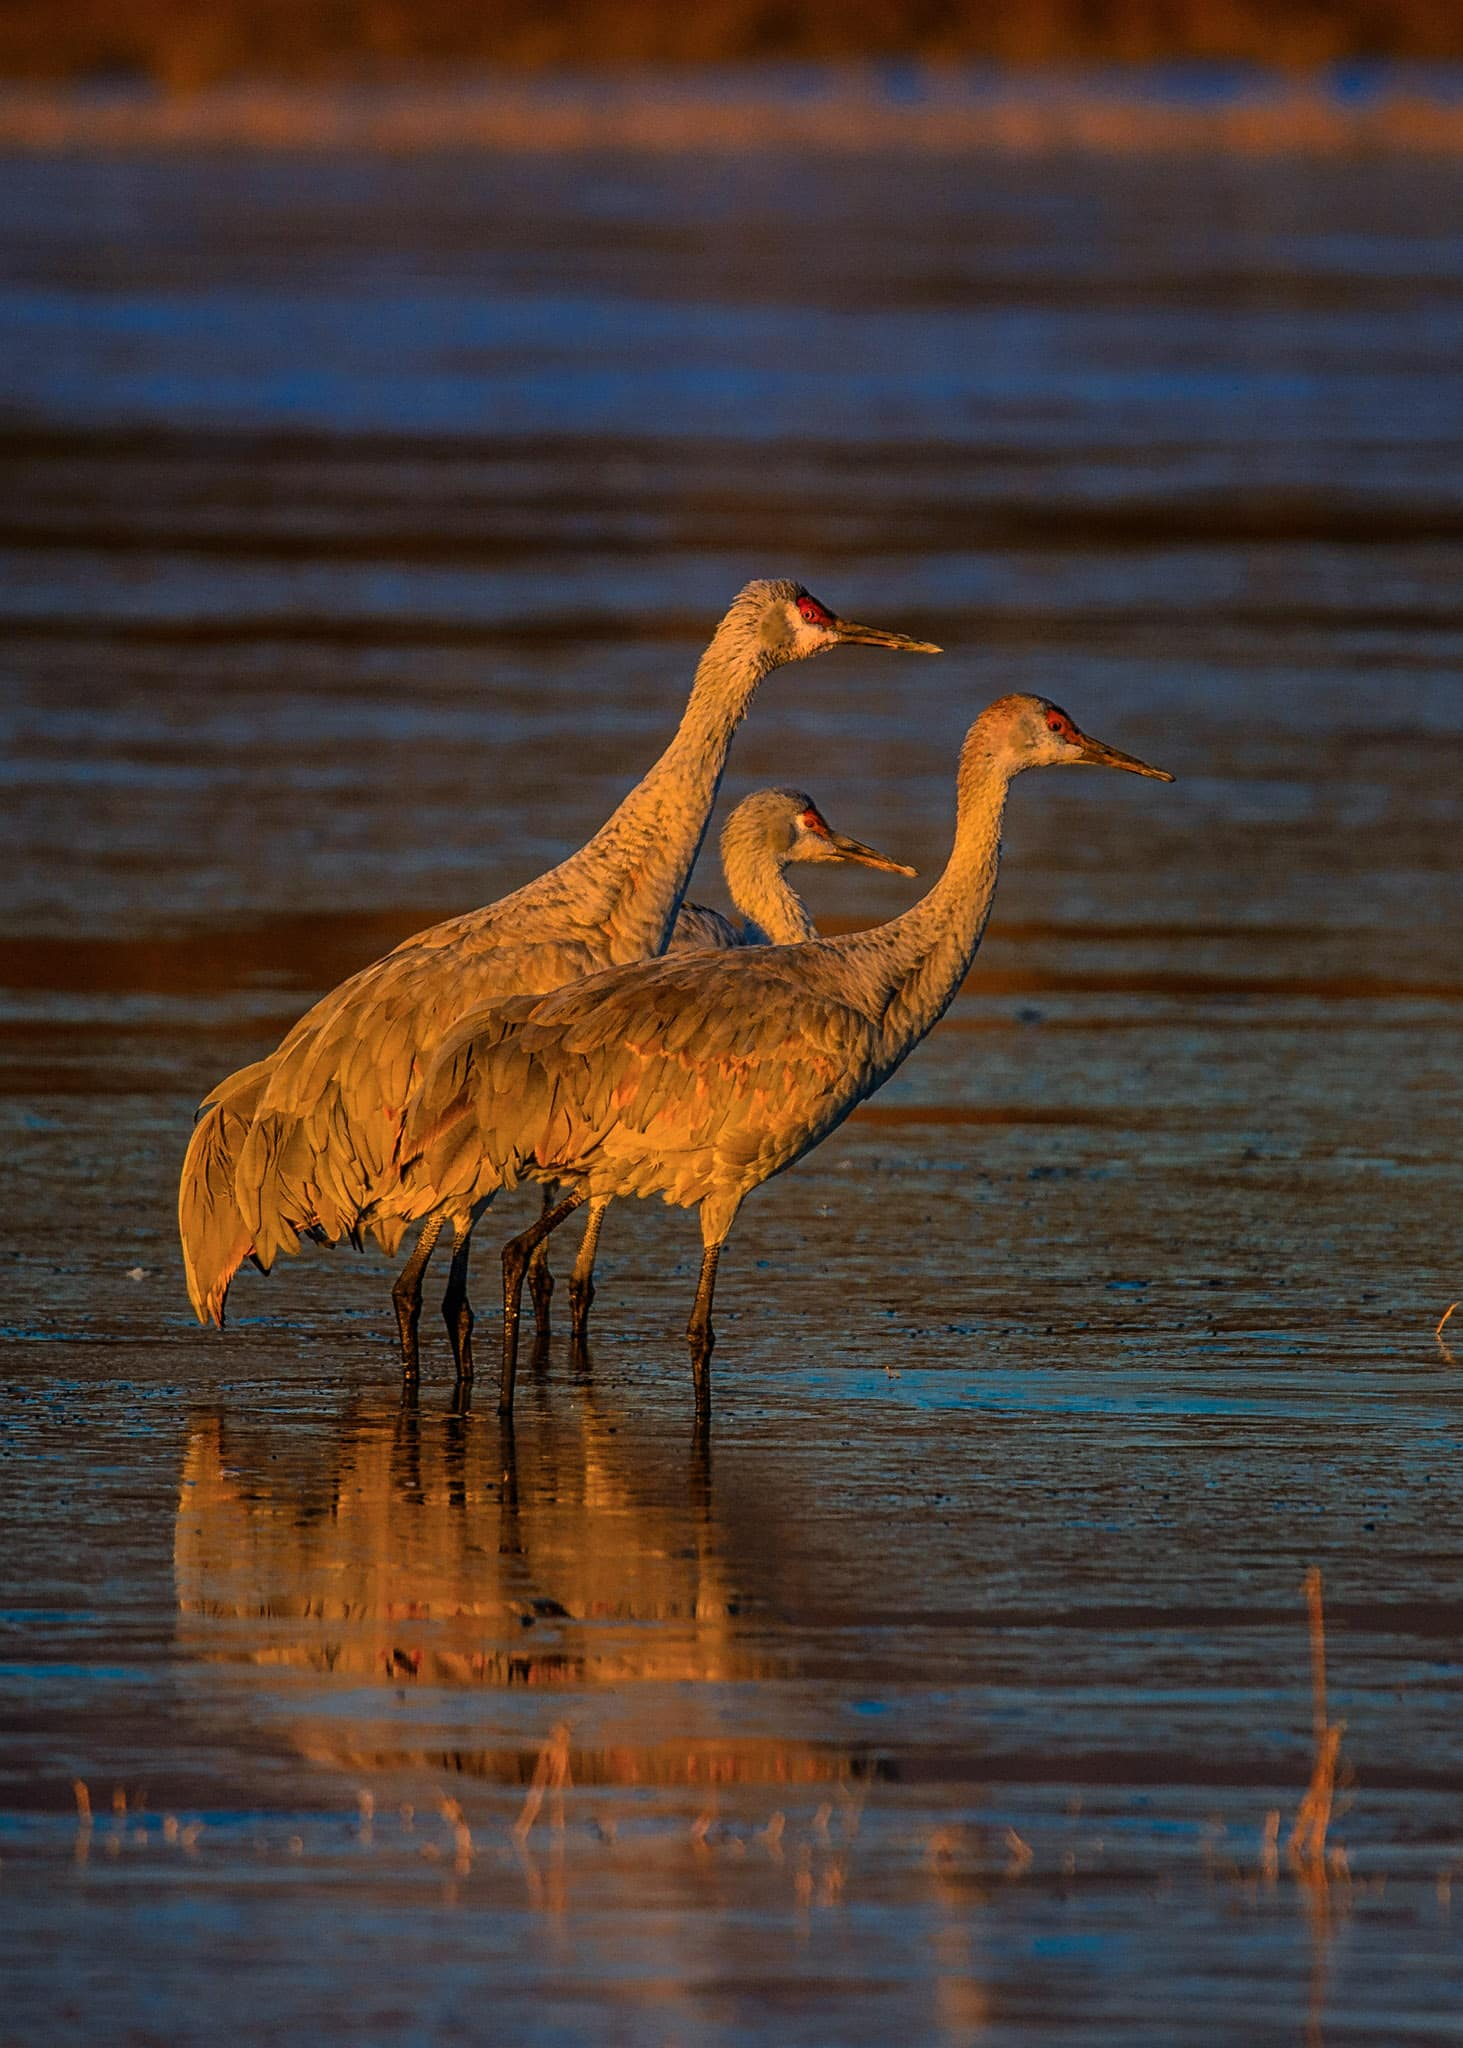 A family group of Greater Sandhill Cranes slowly starts the new day in a pond in Bosque del Apache National Wildlife Refuge near Socorro, New Mexico.